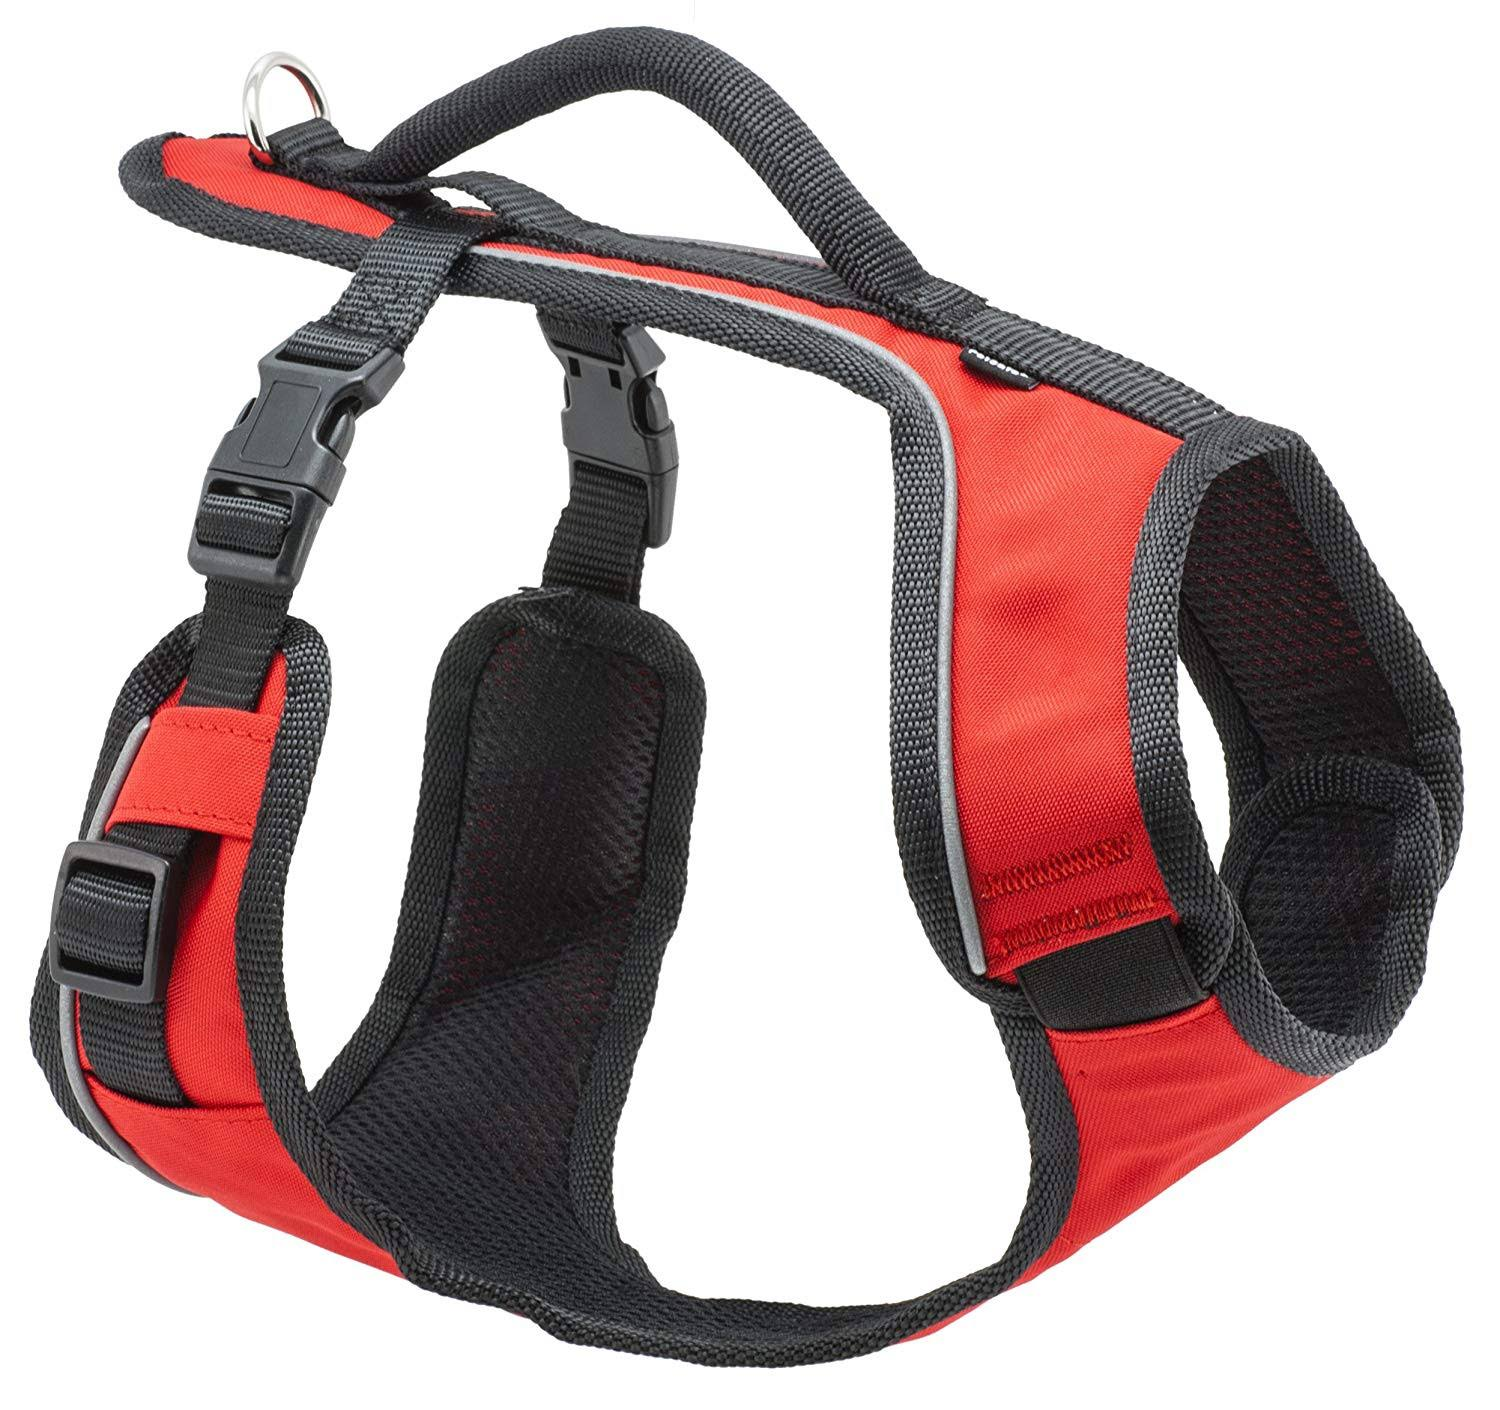 Pet Safe Easysport Dog Harness - Red, X-Small